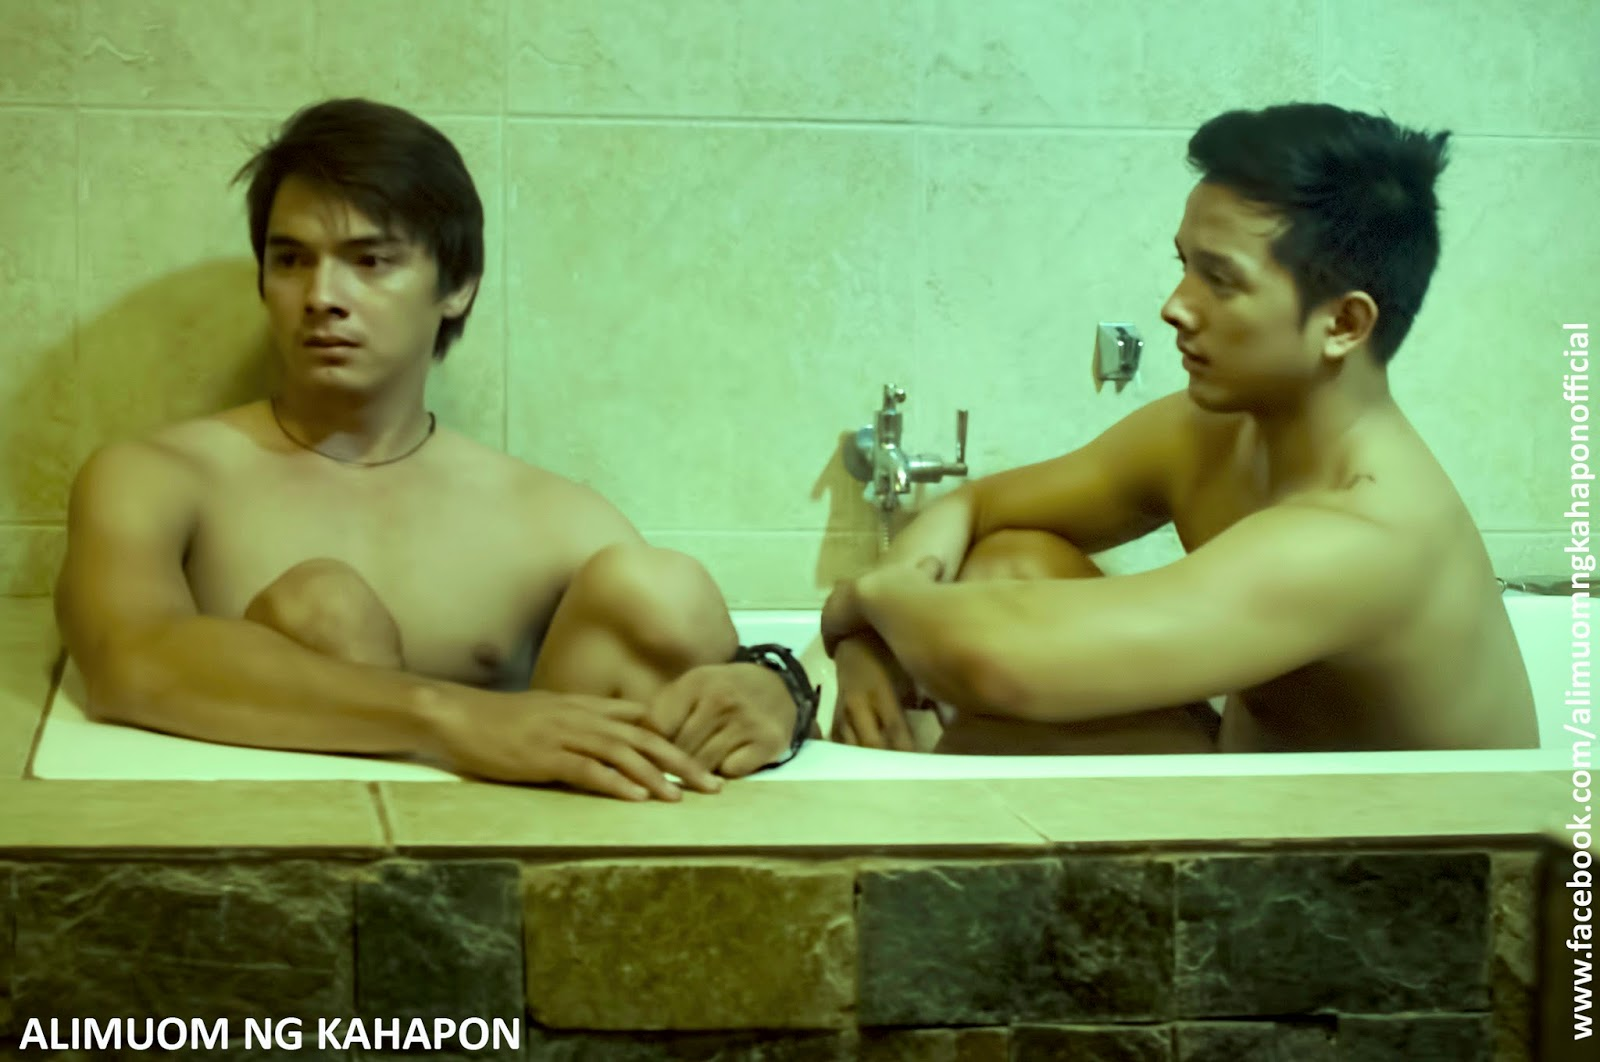 from Quinn pinoy gay movies